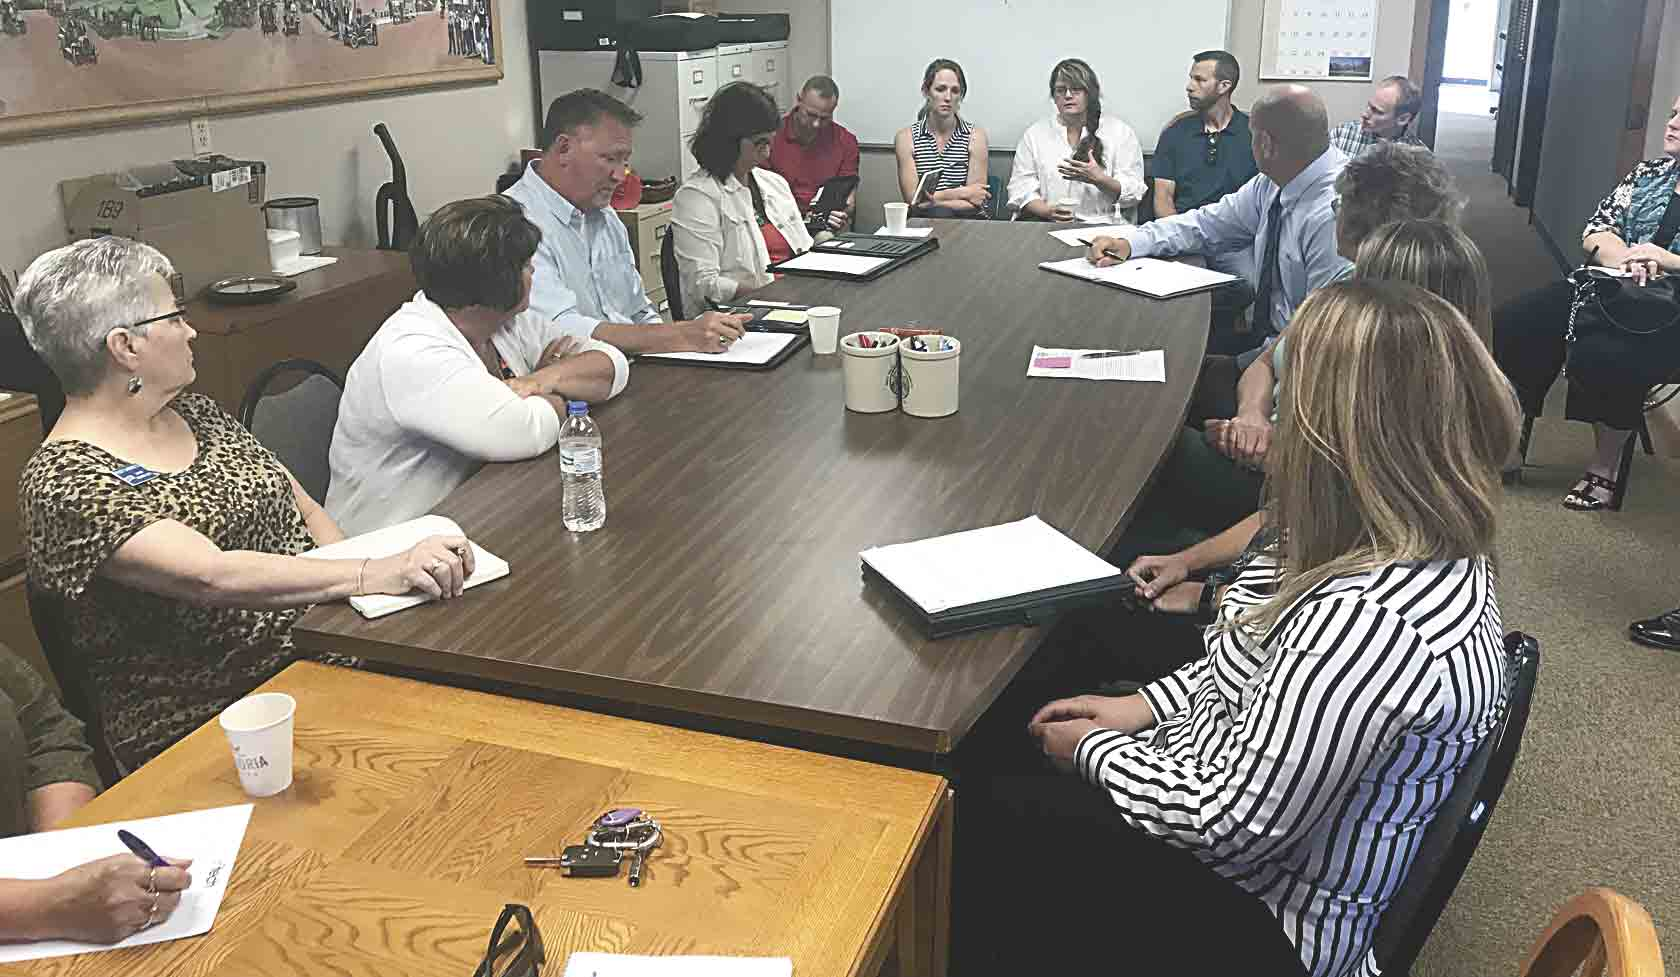 The new Fayette County Economic Development & Tourism organization held its first official meeting on Wednesday, July 10, with potential partners from Fayette County cities, utilities, and banks gathering to meeting and ask questions of new Fayette County Economic Development Director Mallory...